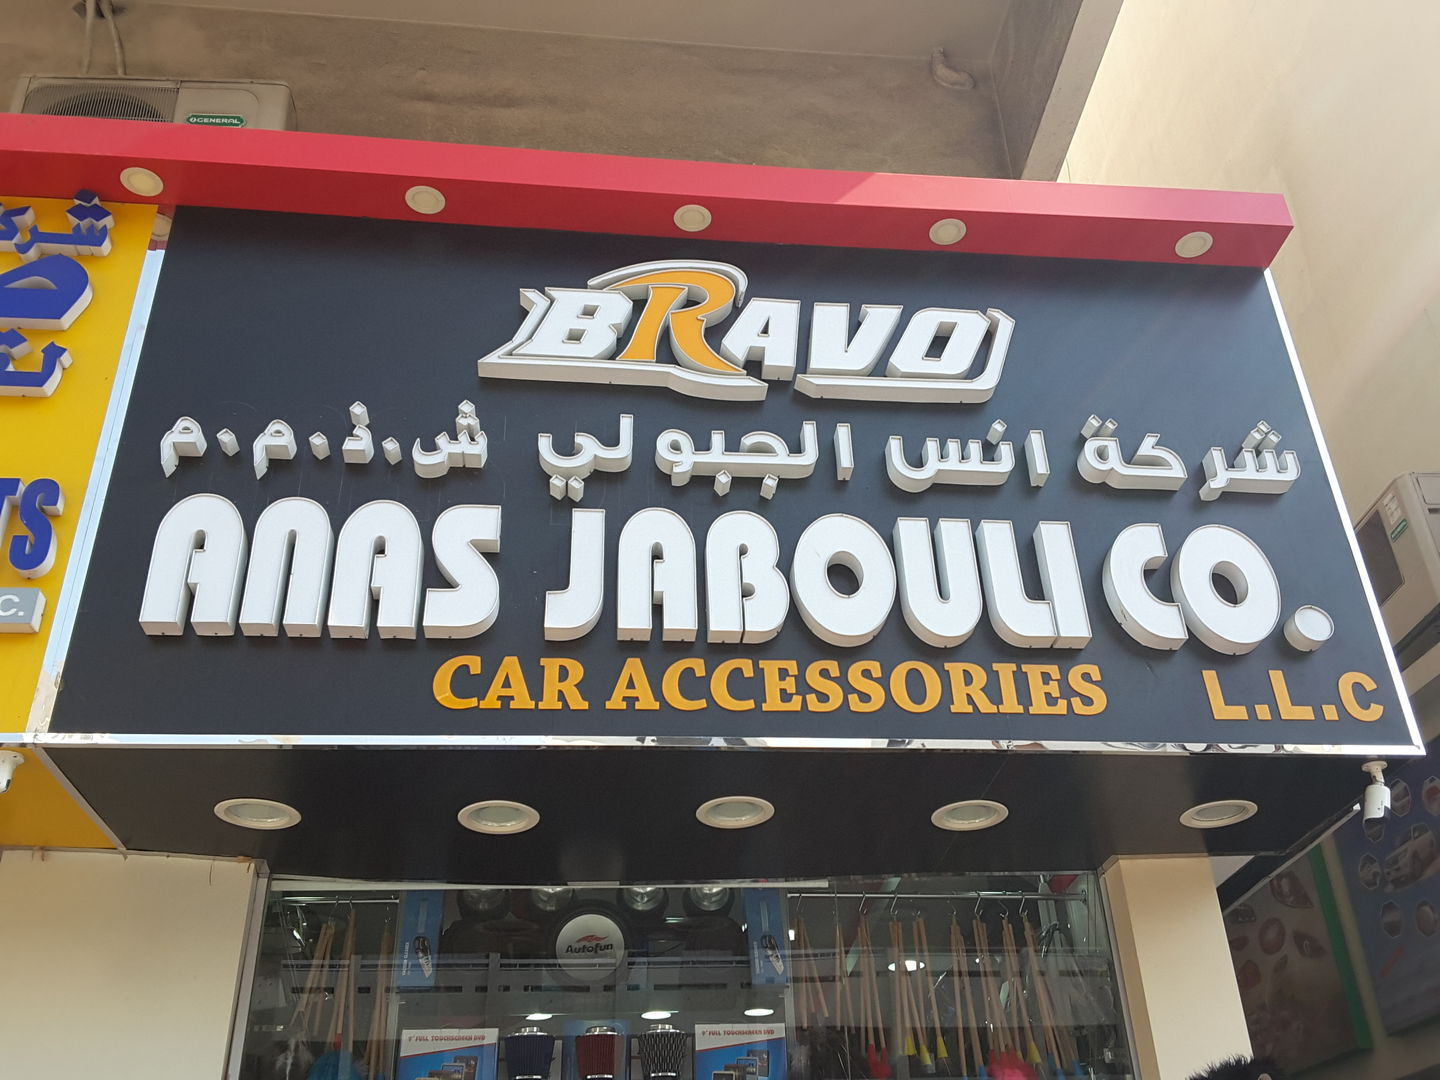 HiDubai-business-mohamad-anas-jabouli-car-accessories-b2b-services-distributors-wholesalers-naif-dubai-2